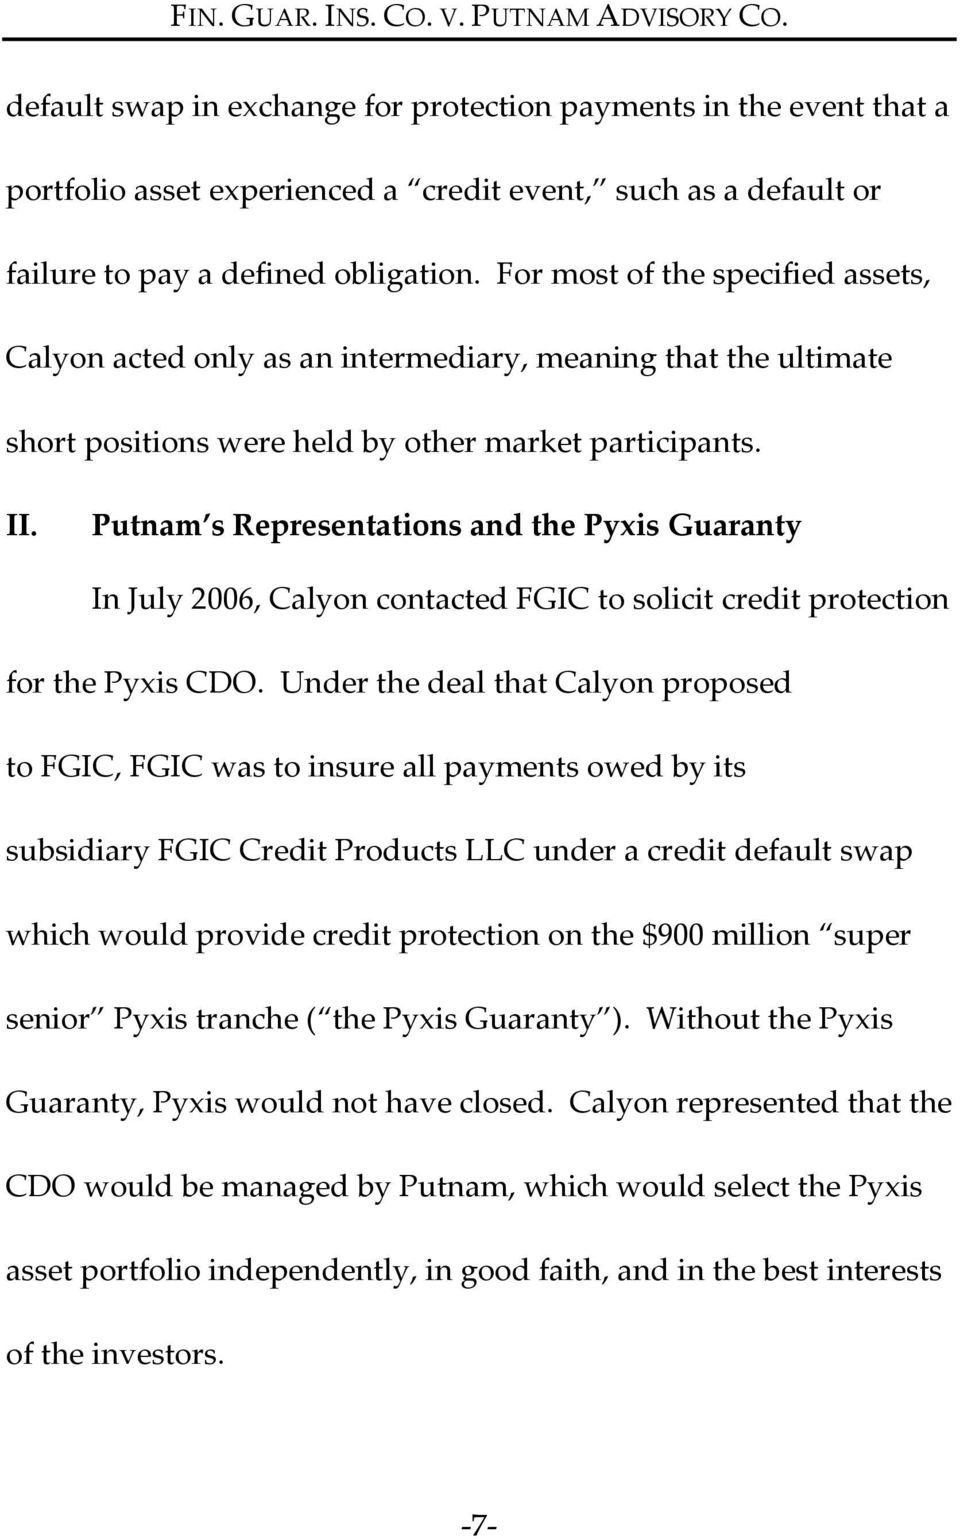 Putnam s Representations and the Pyxis Guaranty In July 2006, Calyon contacted FGIC to solicit credit protection for the Pyxis CDO.